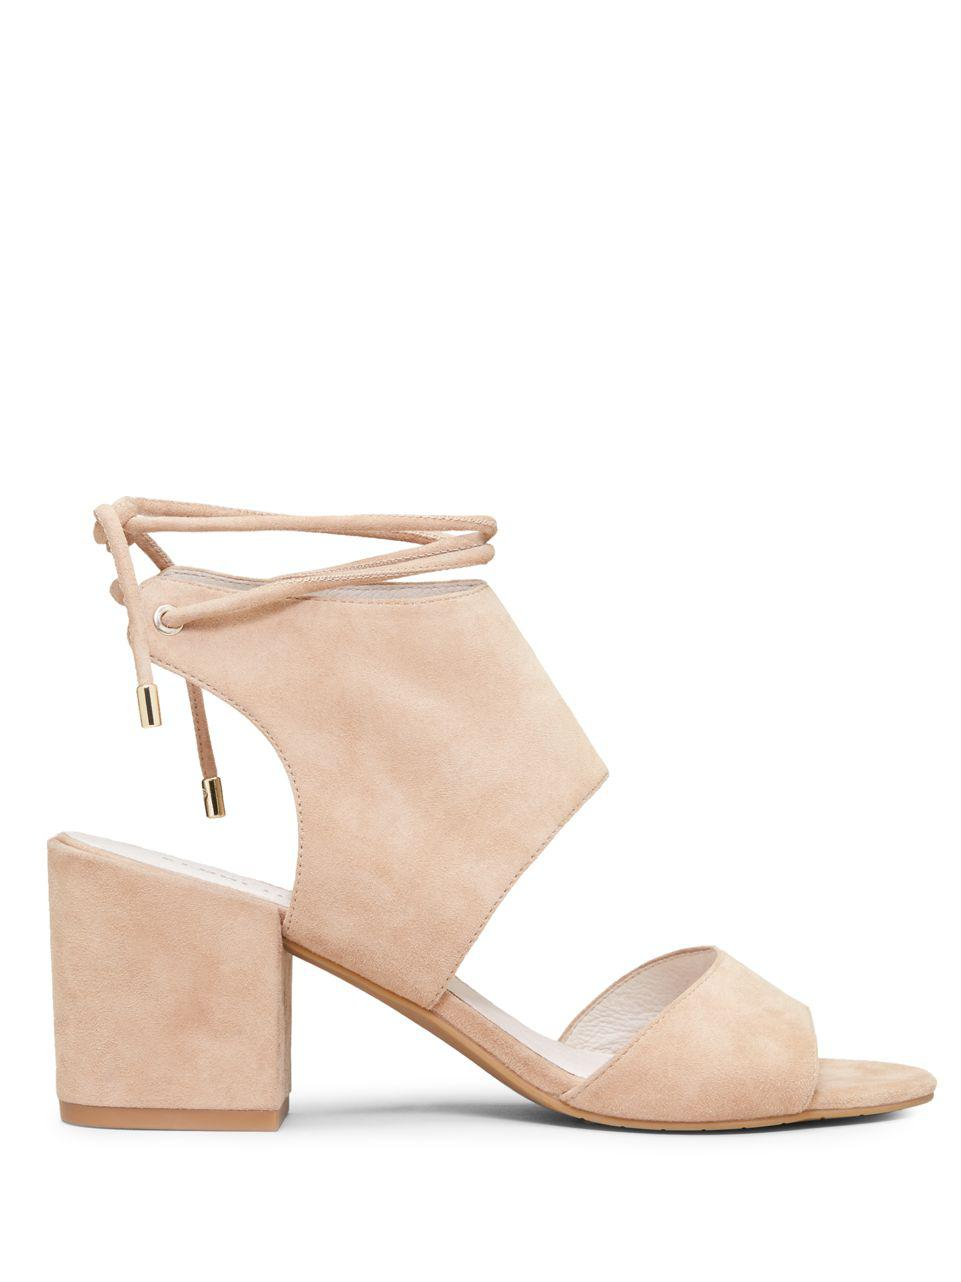 24e0acbd750f Kenneth Cole Vito Ankle-wrap Suede Block Heel Sandals in Natural - Lyst